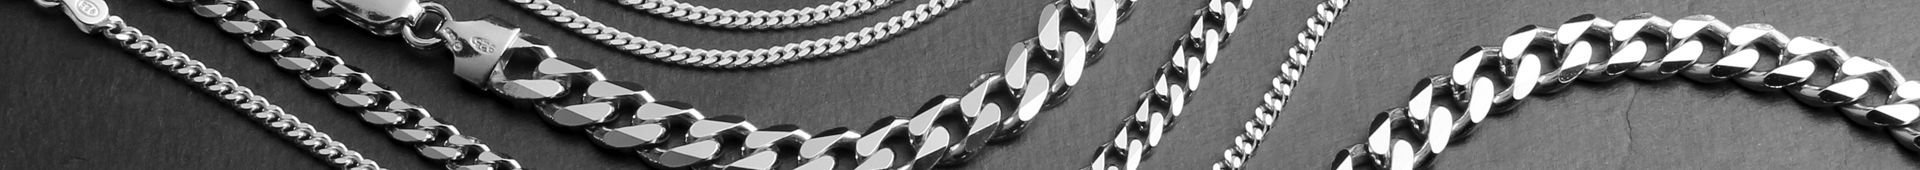 Men's Sterling Silver Curb Chains